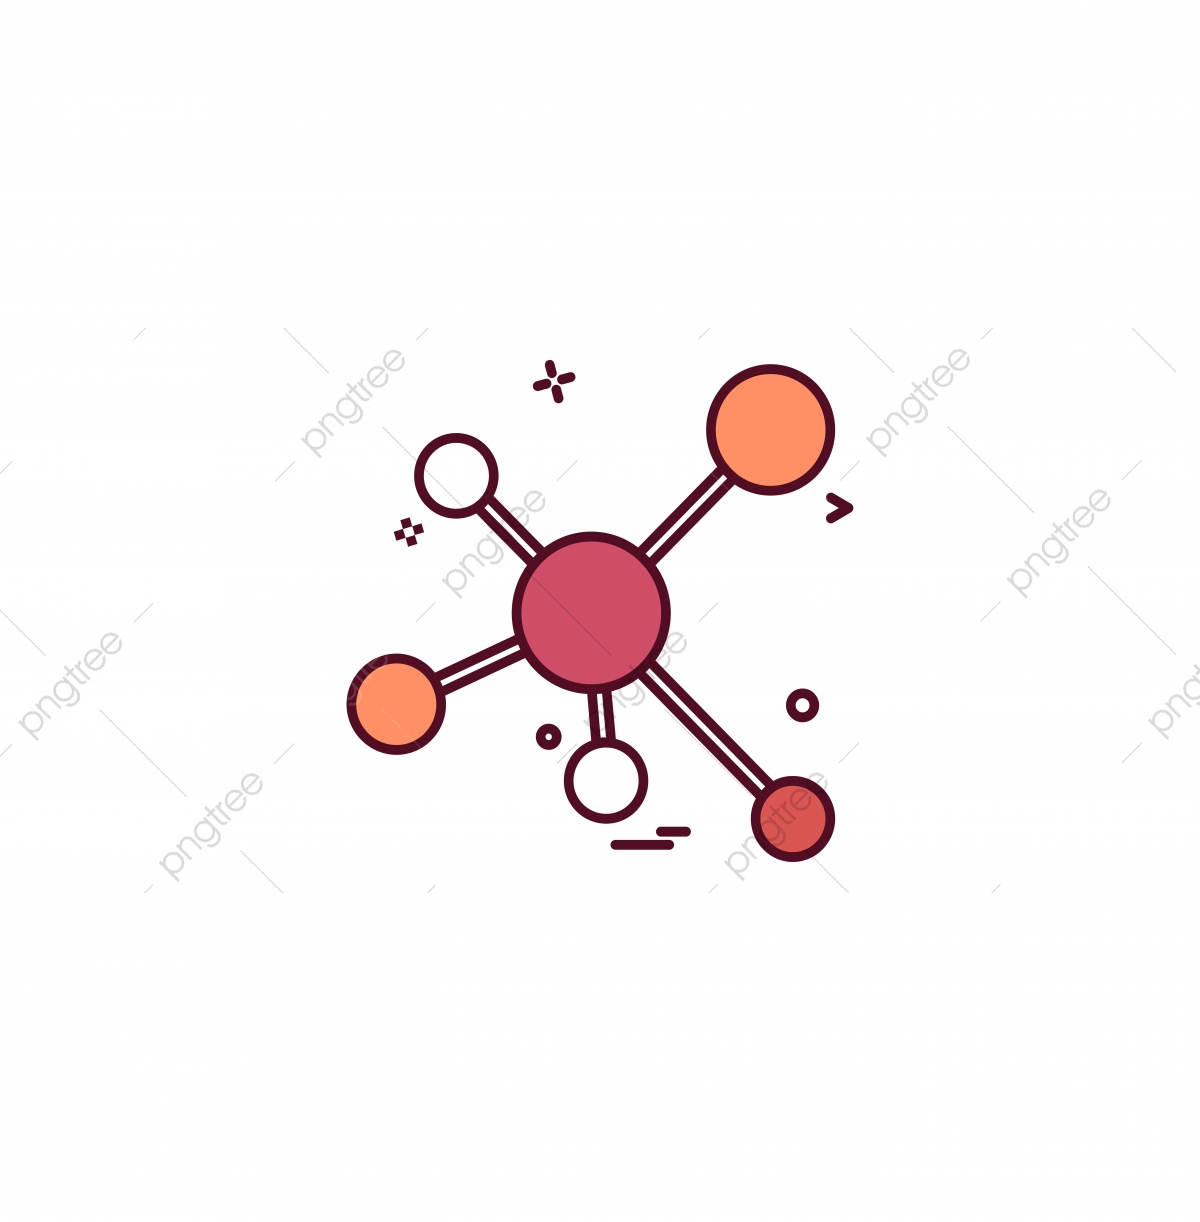 science png images vector and psd files free download on pngtree https pngtree com freepng atomic science icon vector 3664262 html